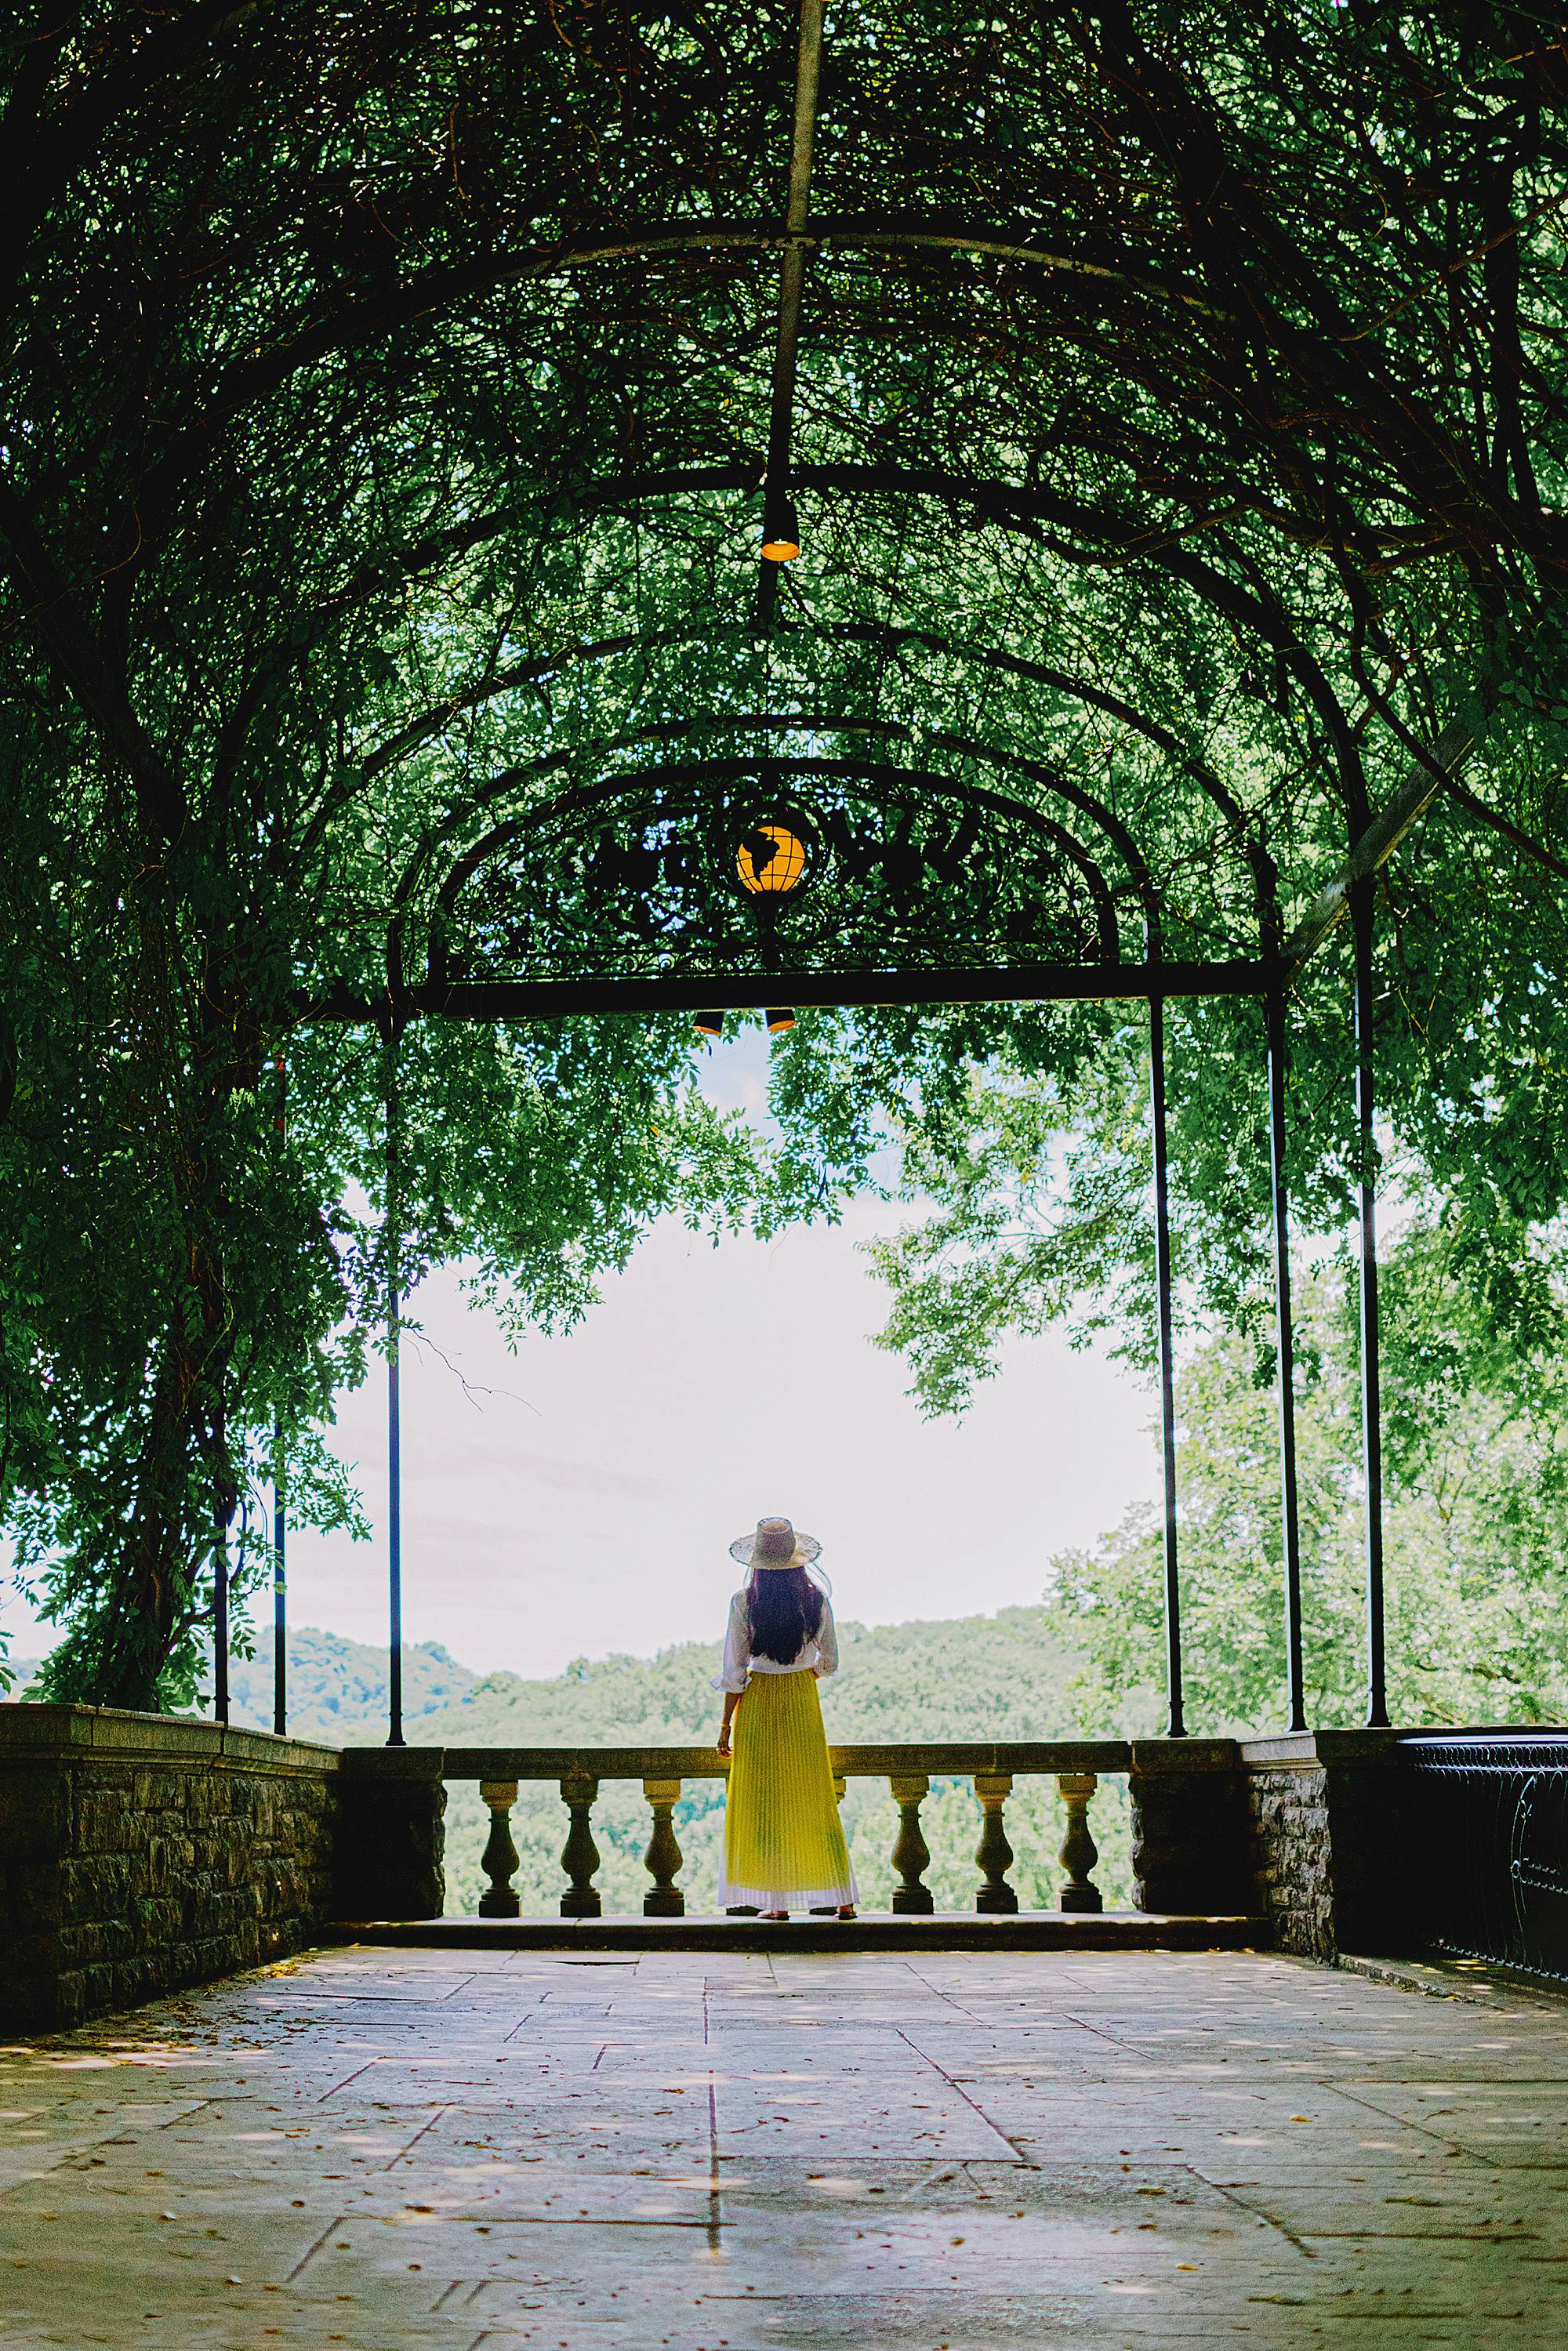 vines epic view at cheekwood in Nashville woman wearing yellow dress and hat